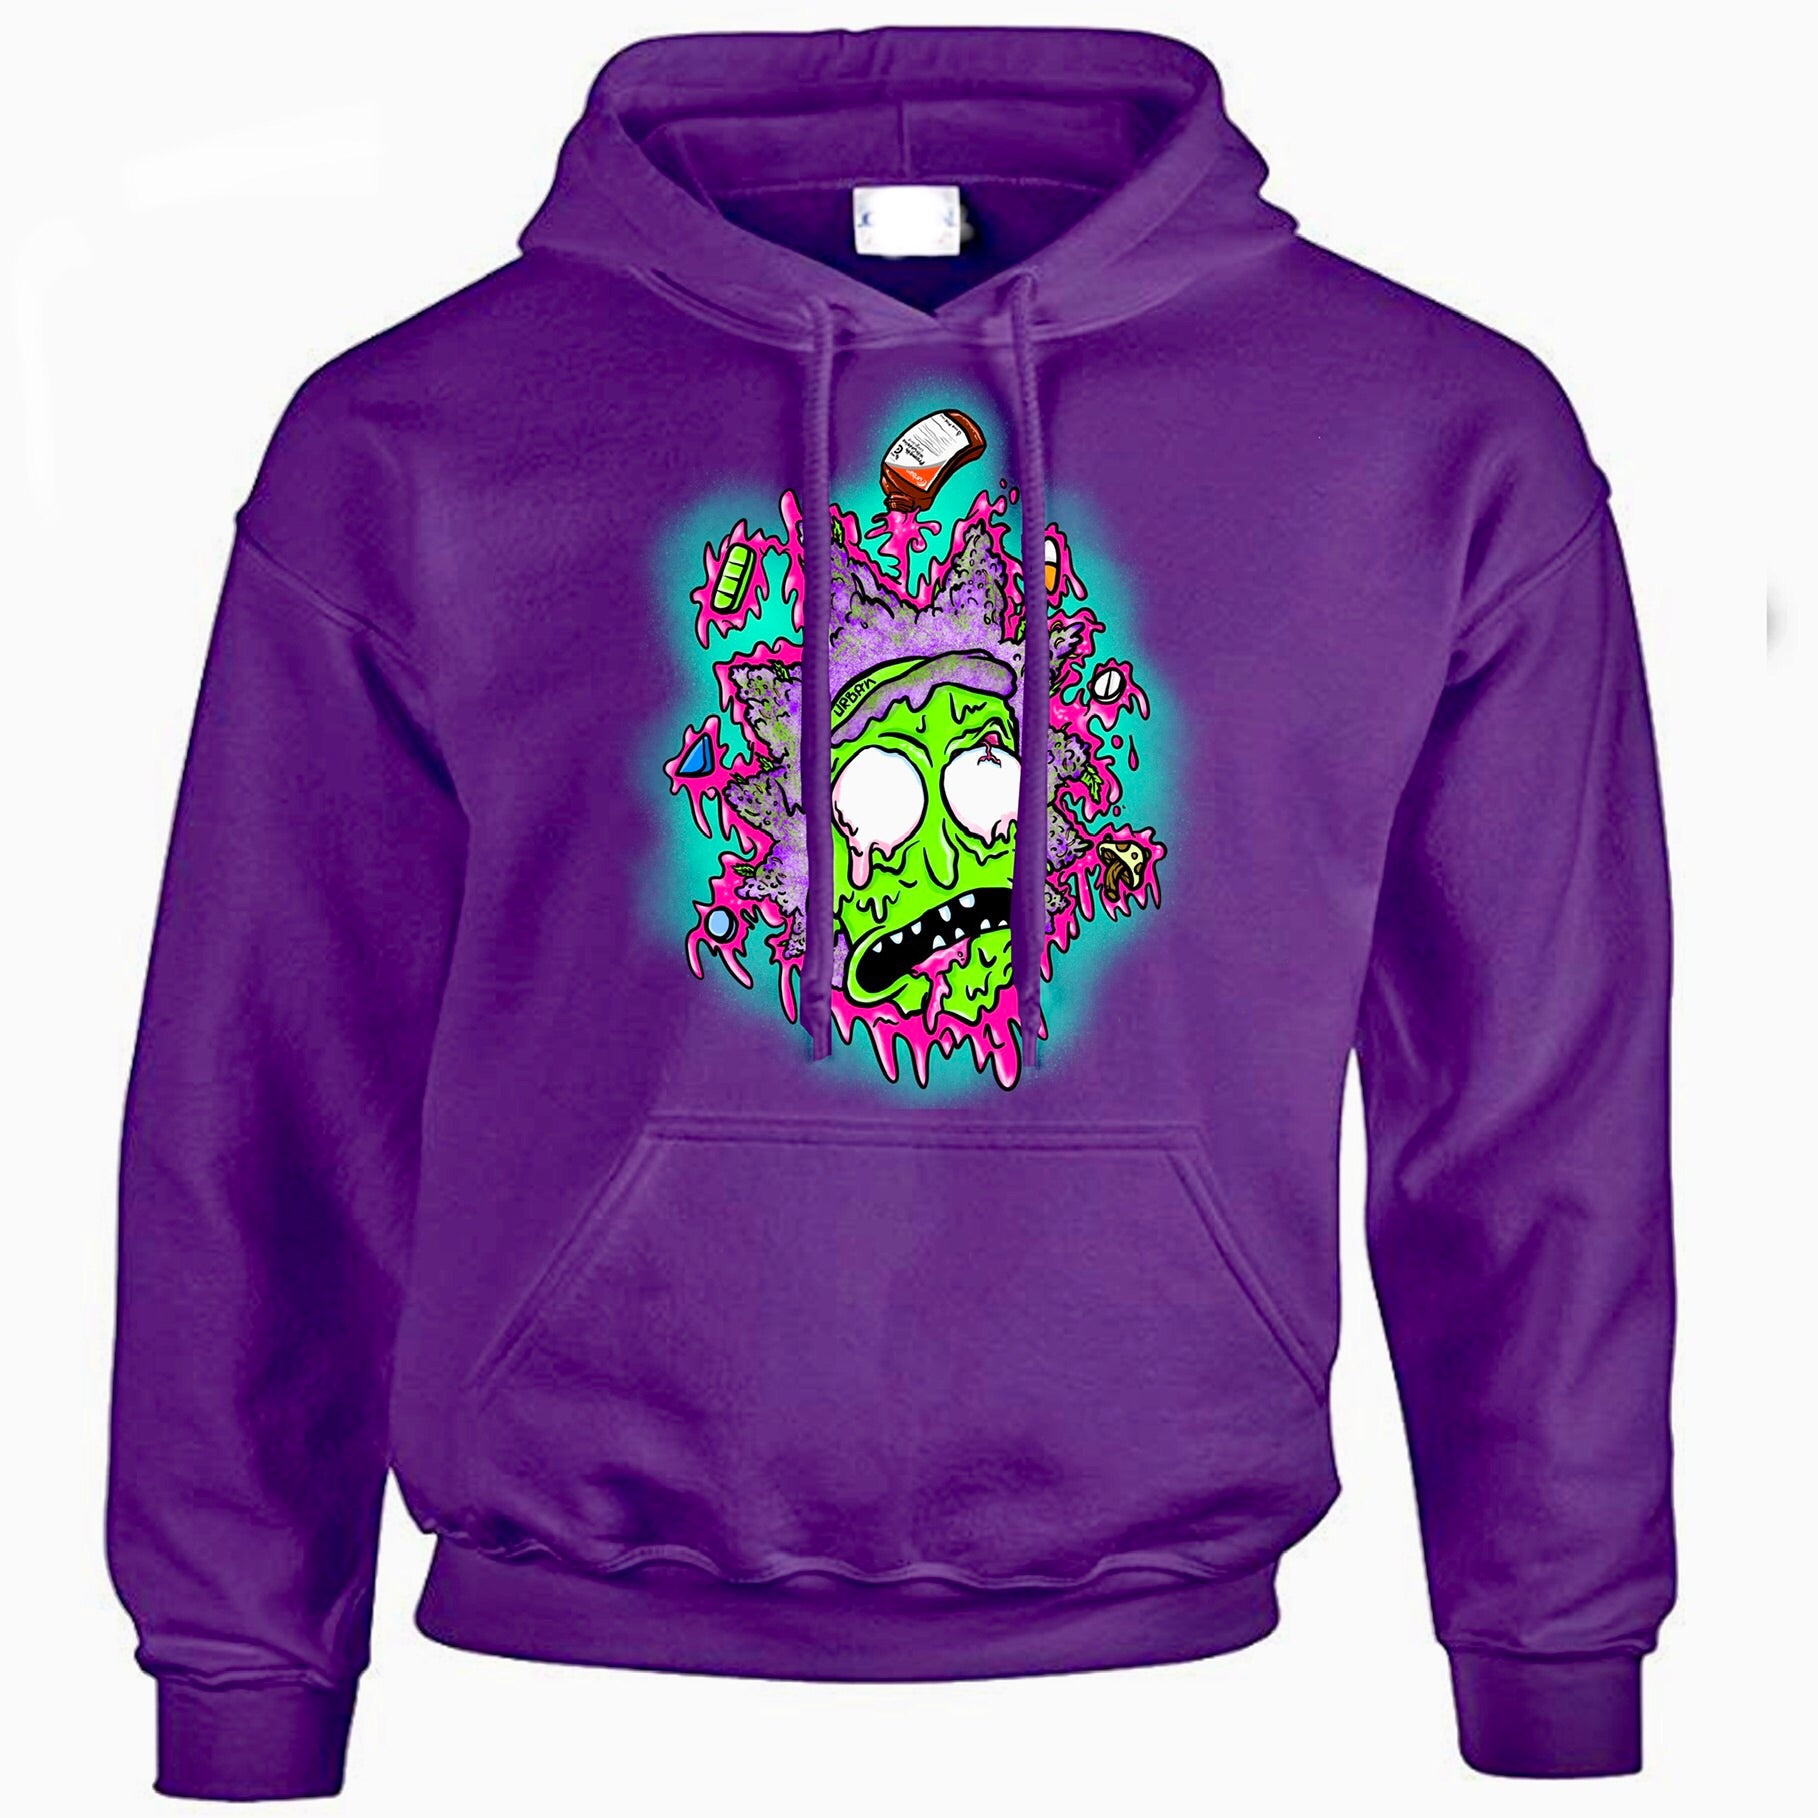 Ricker Urban act purple hoodie